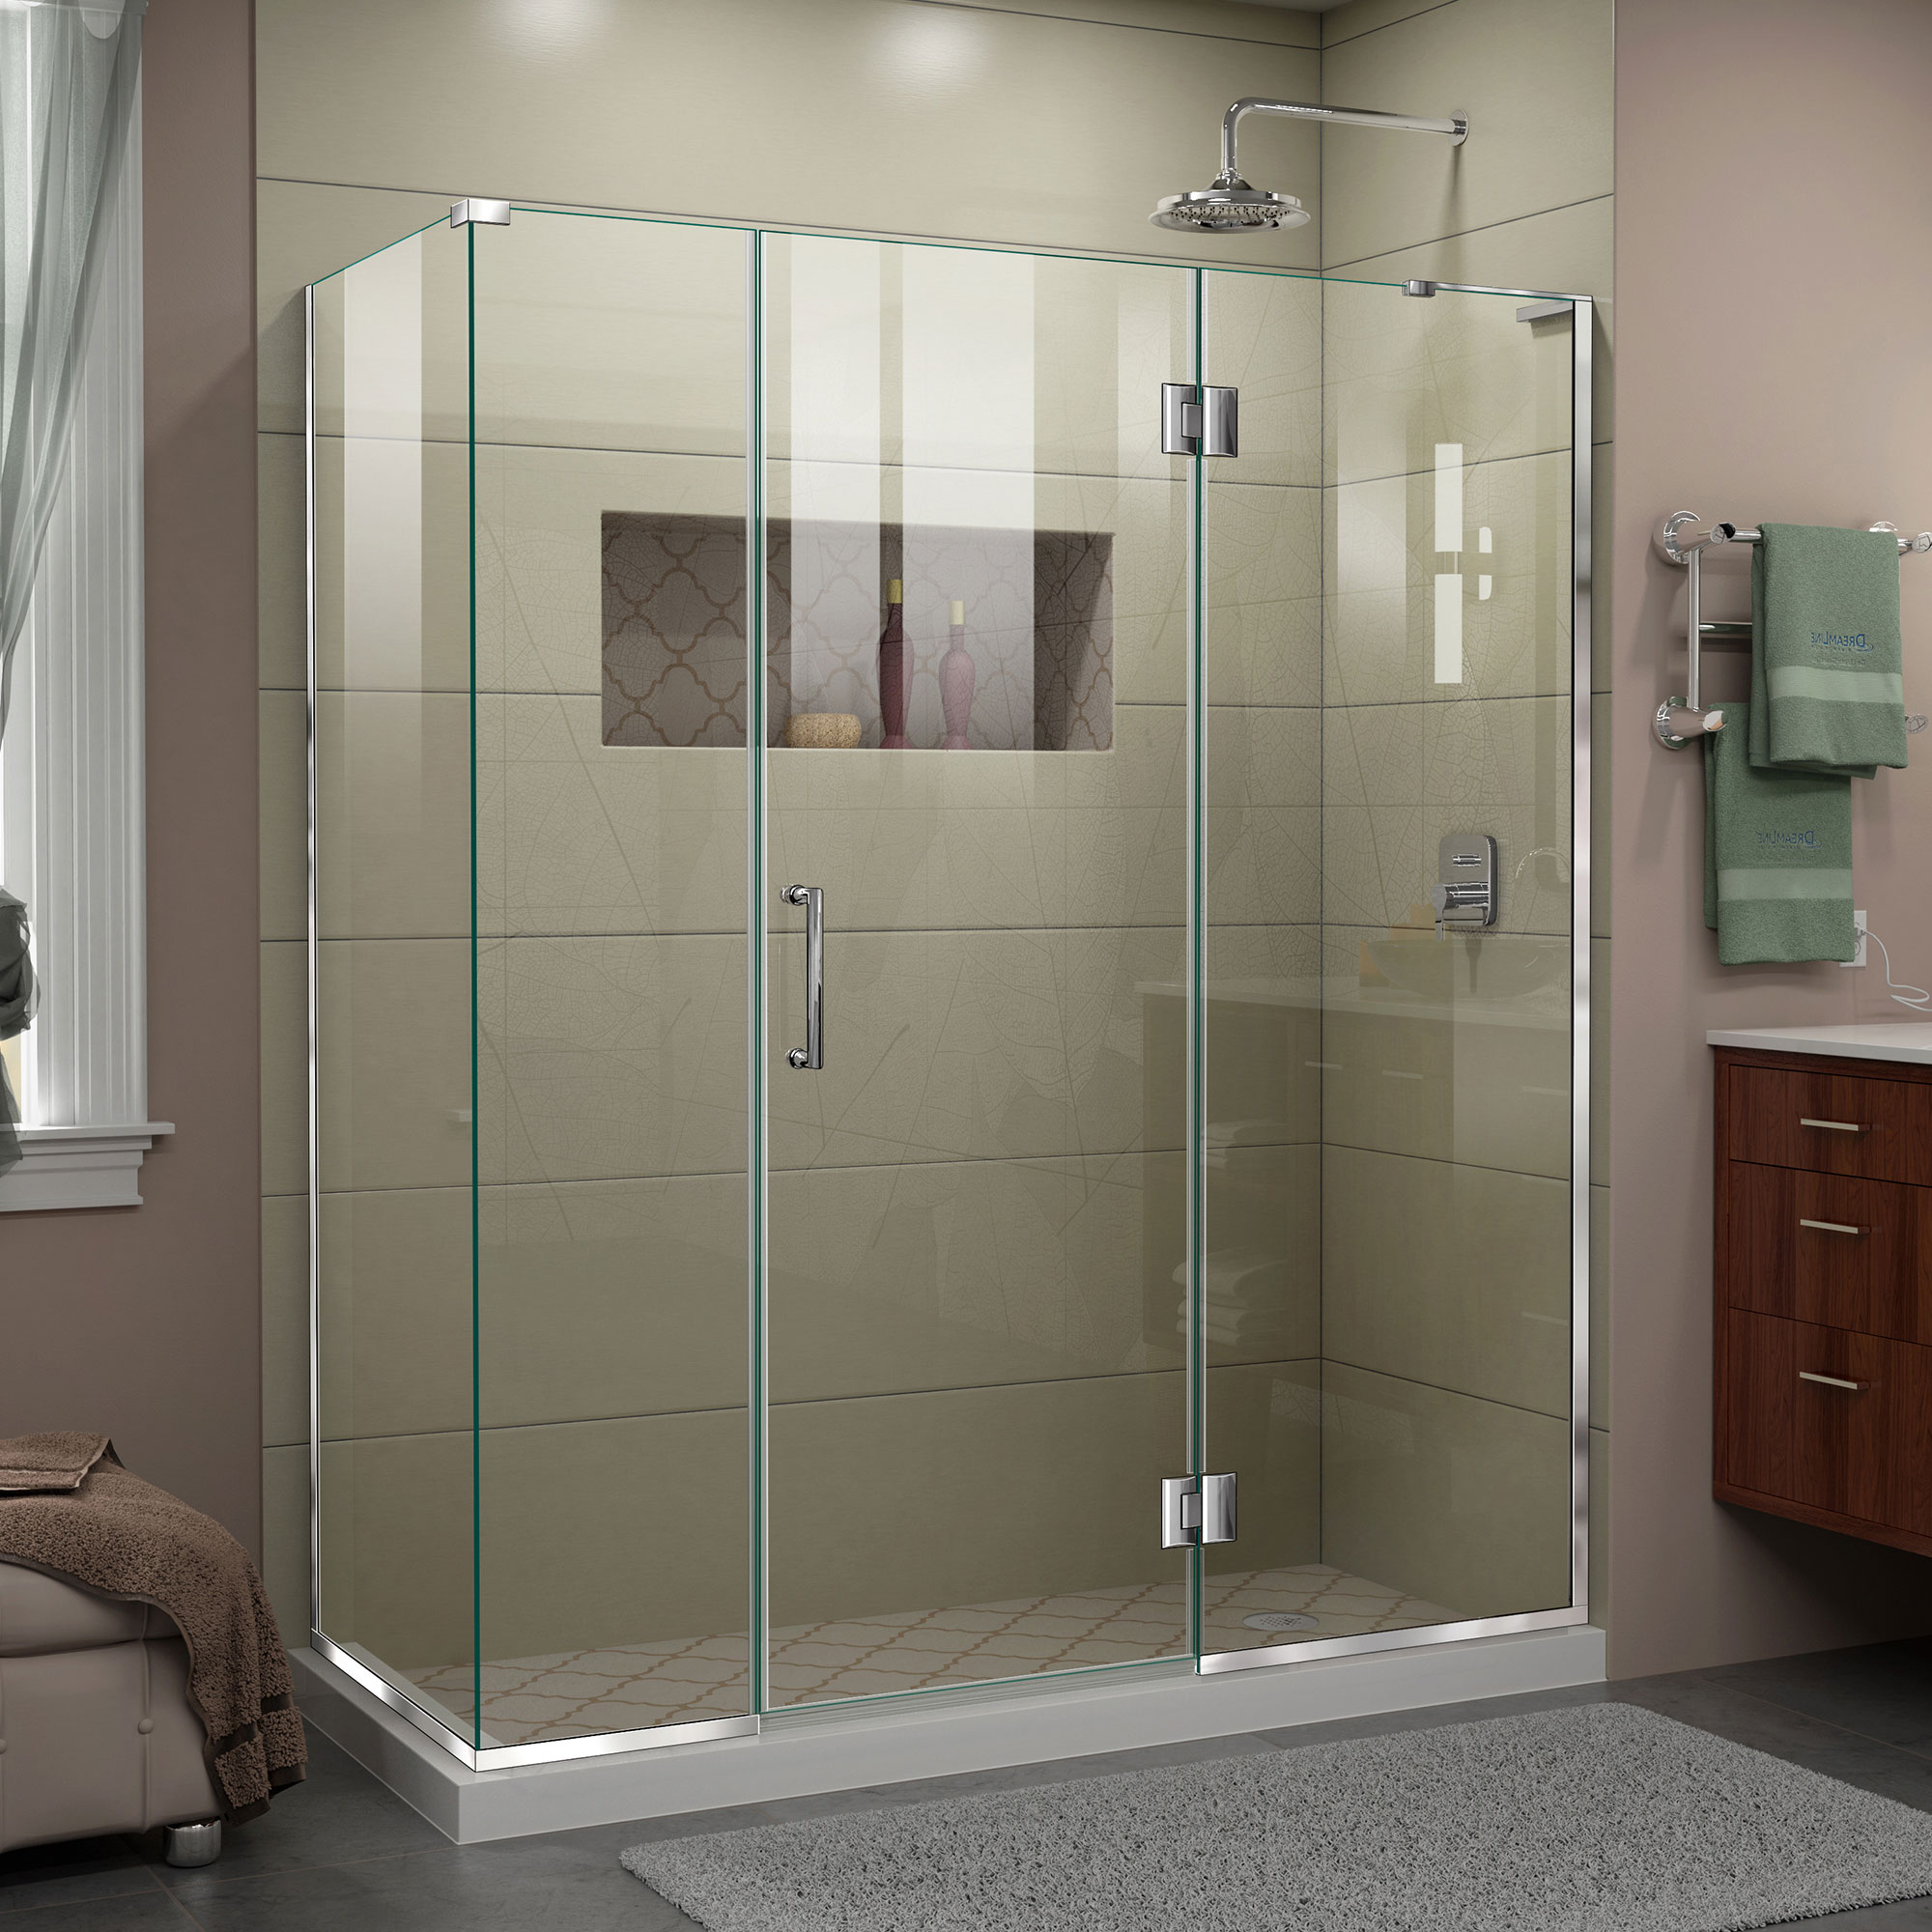 Dreamline Unidoor X 64 1 2 In W X 34 3 8 In D X 72 In H Frameless Hinged Shower Enclosure In Chrome